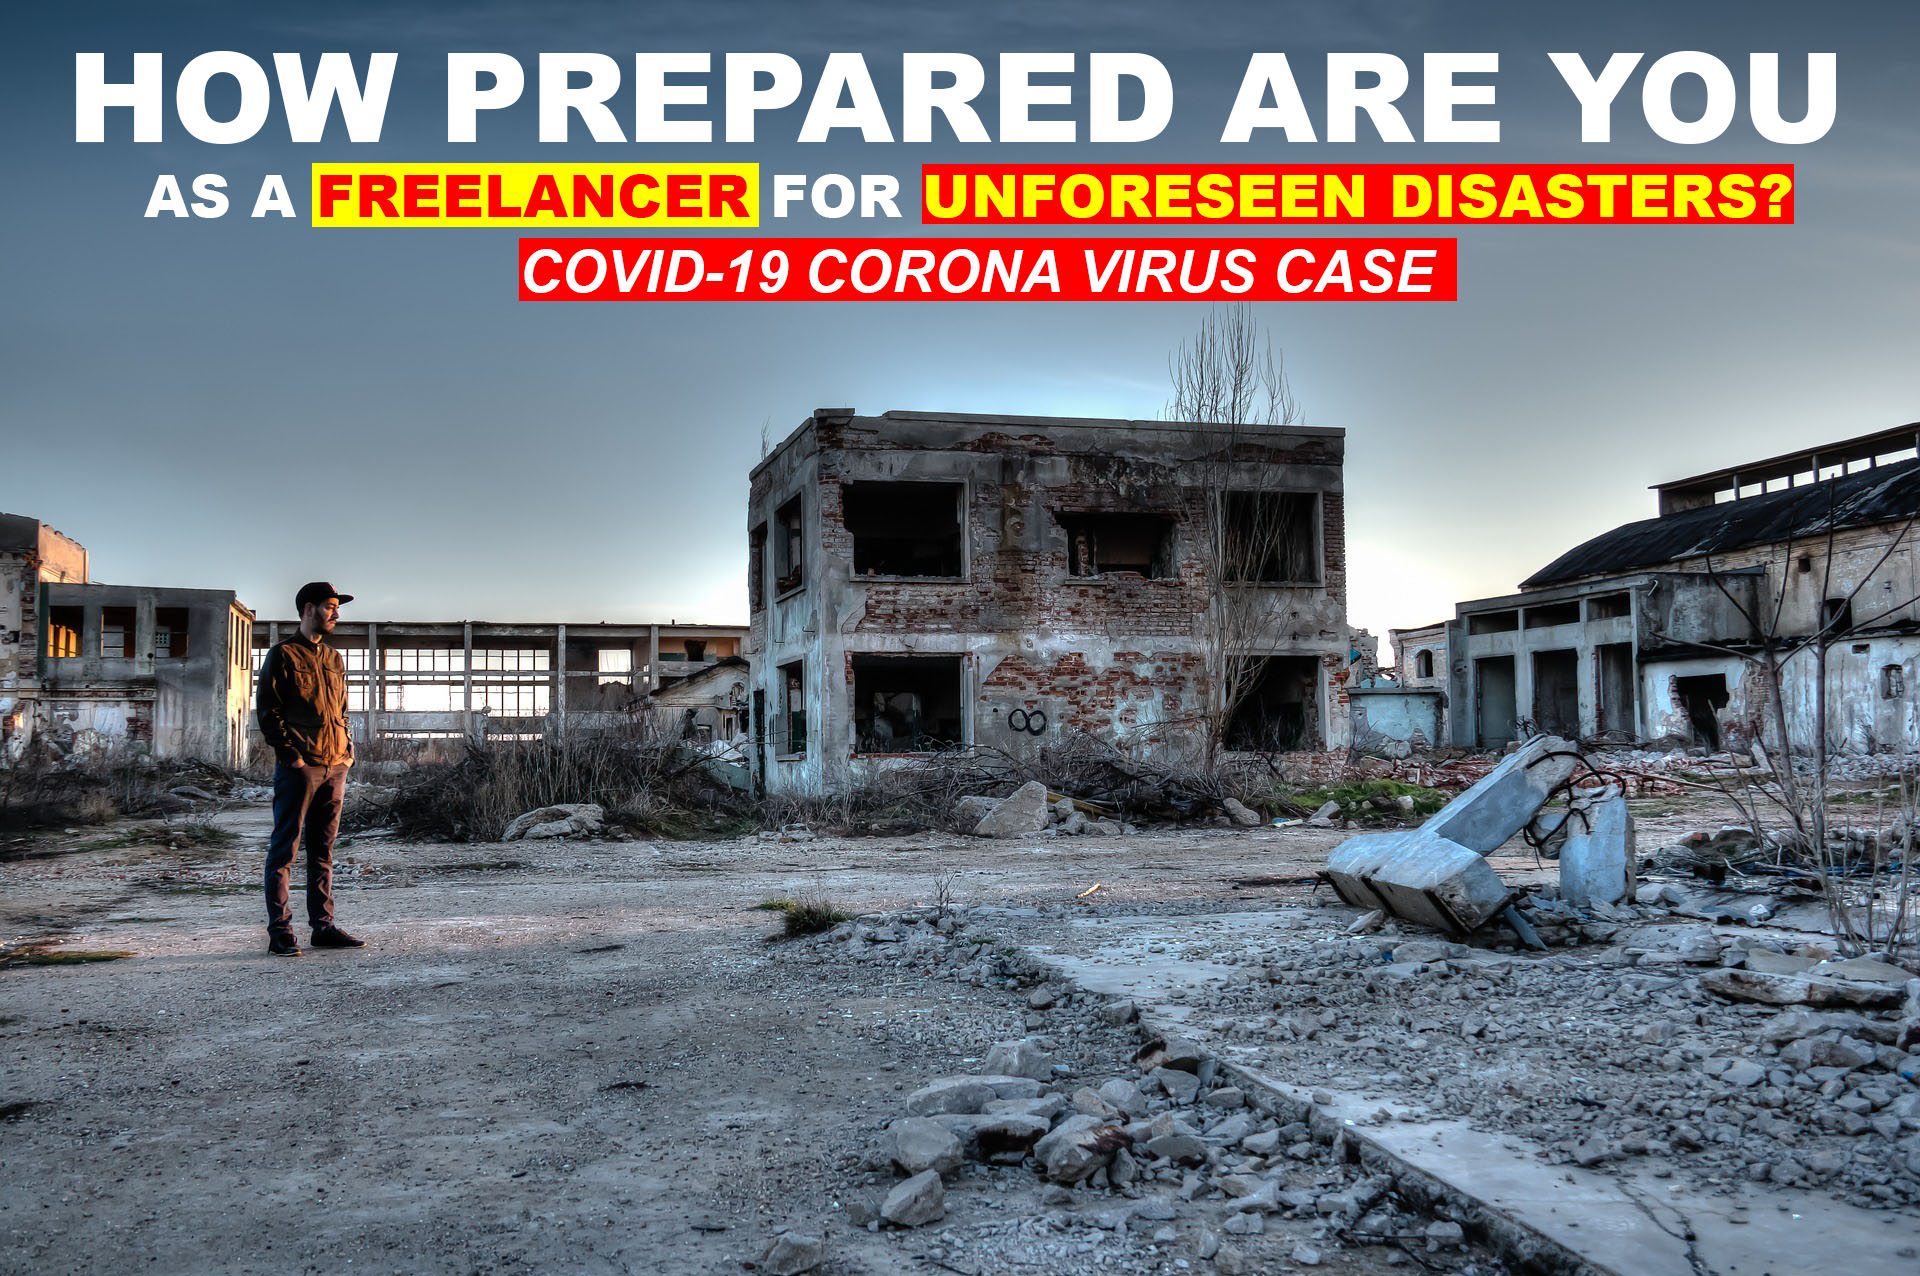 How Prepared are You as a Freelancer For Unforeseen Disasters? Covid-19 Corona Virus Case